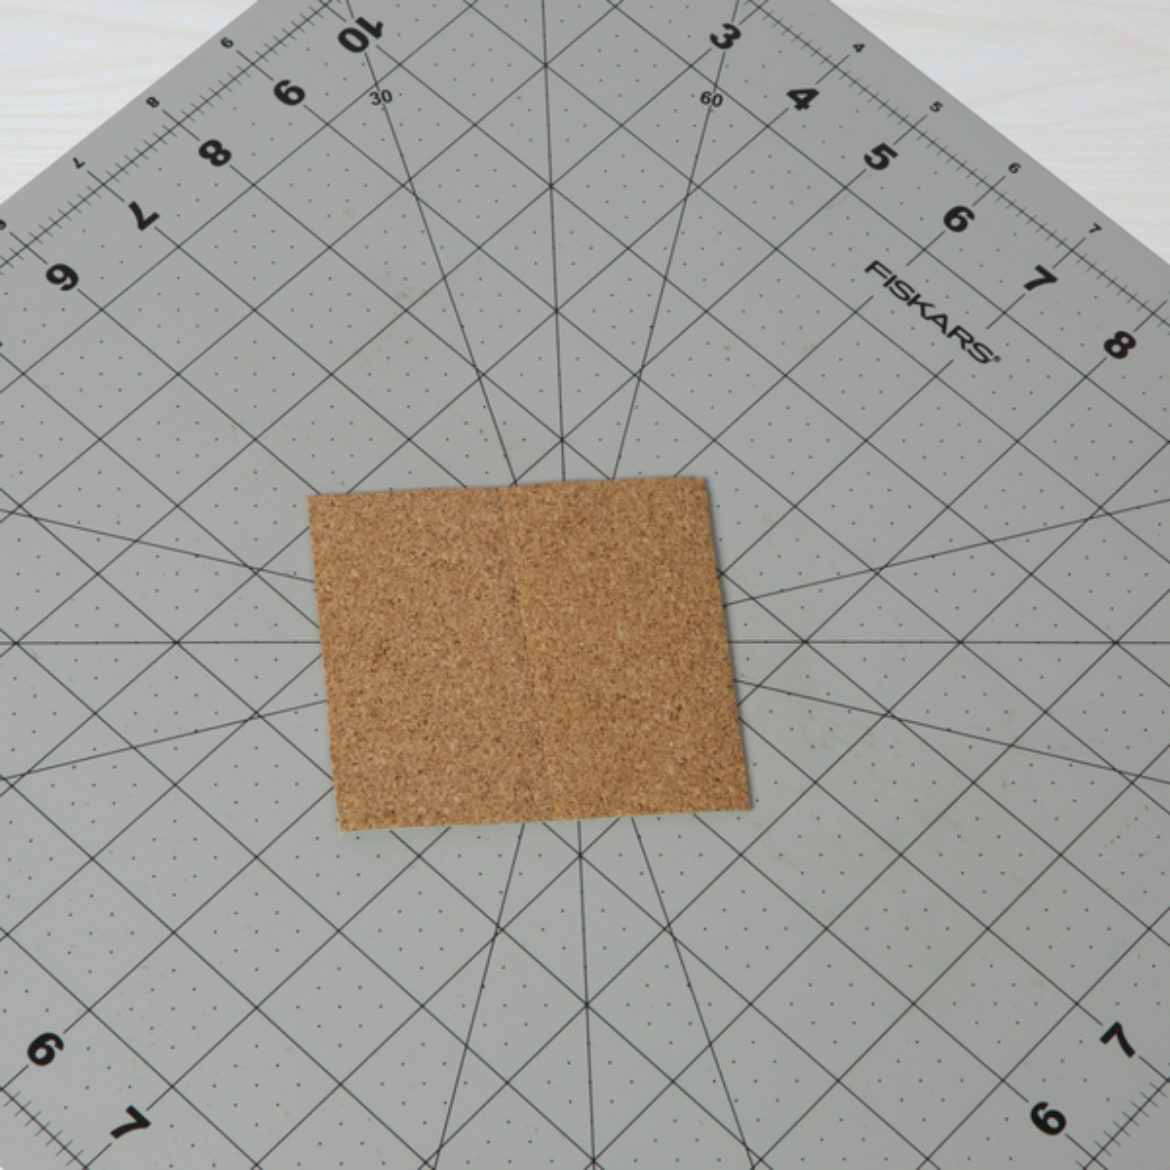 excess Duck Tape and Cork Tape trimmed off to form a square